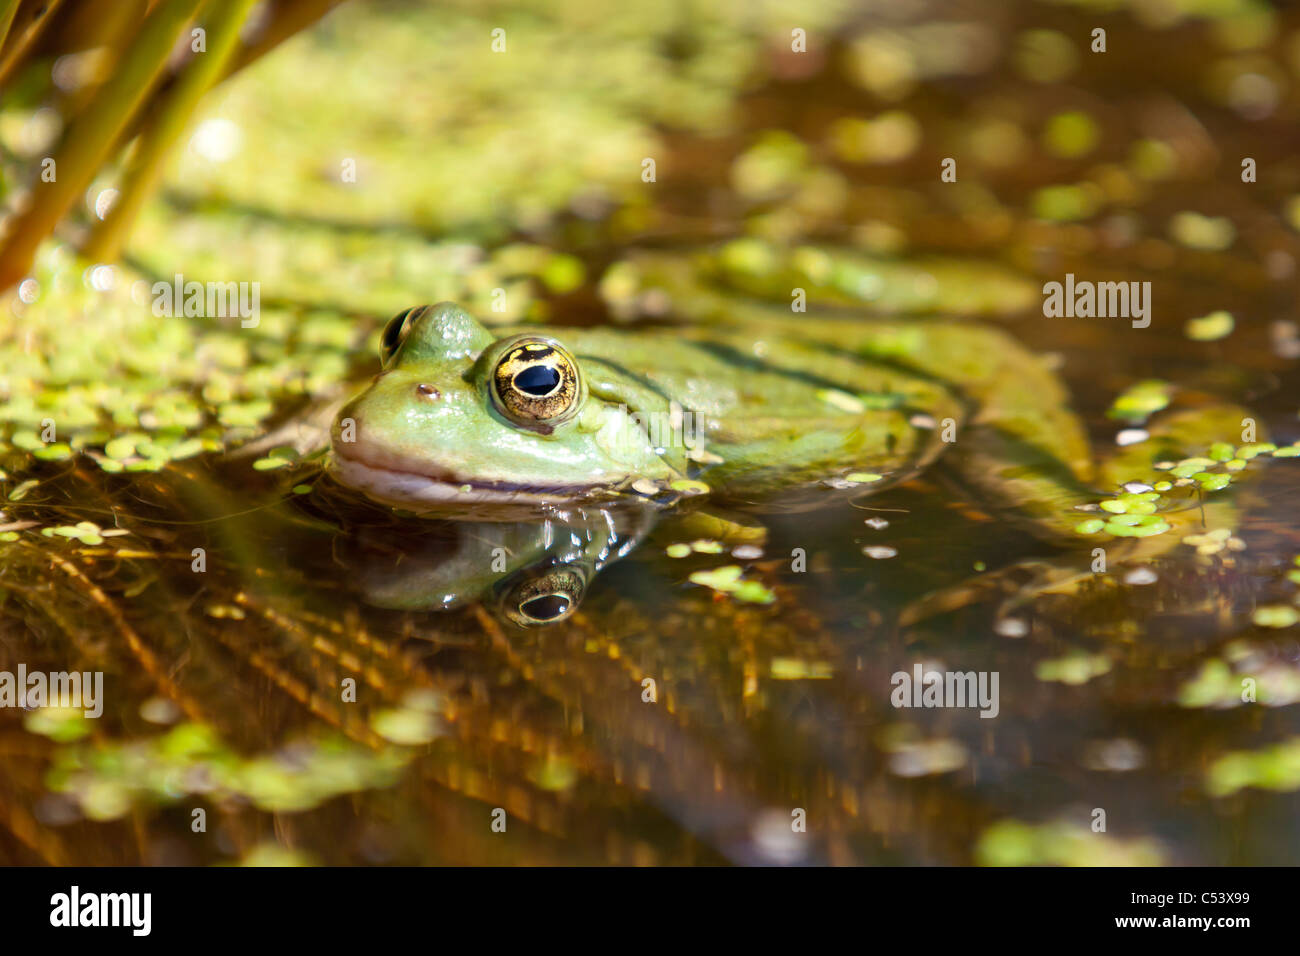 Common toad in a pond with his head above the water - Stock Image